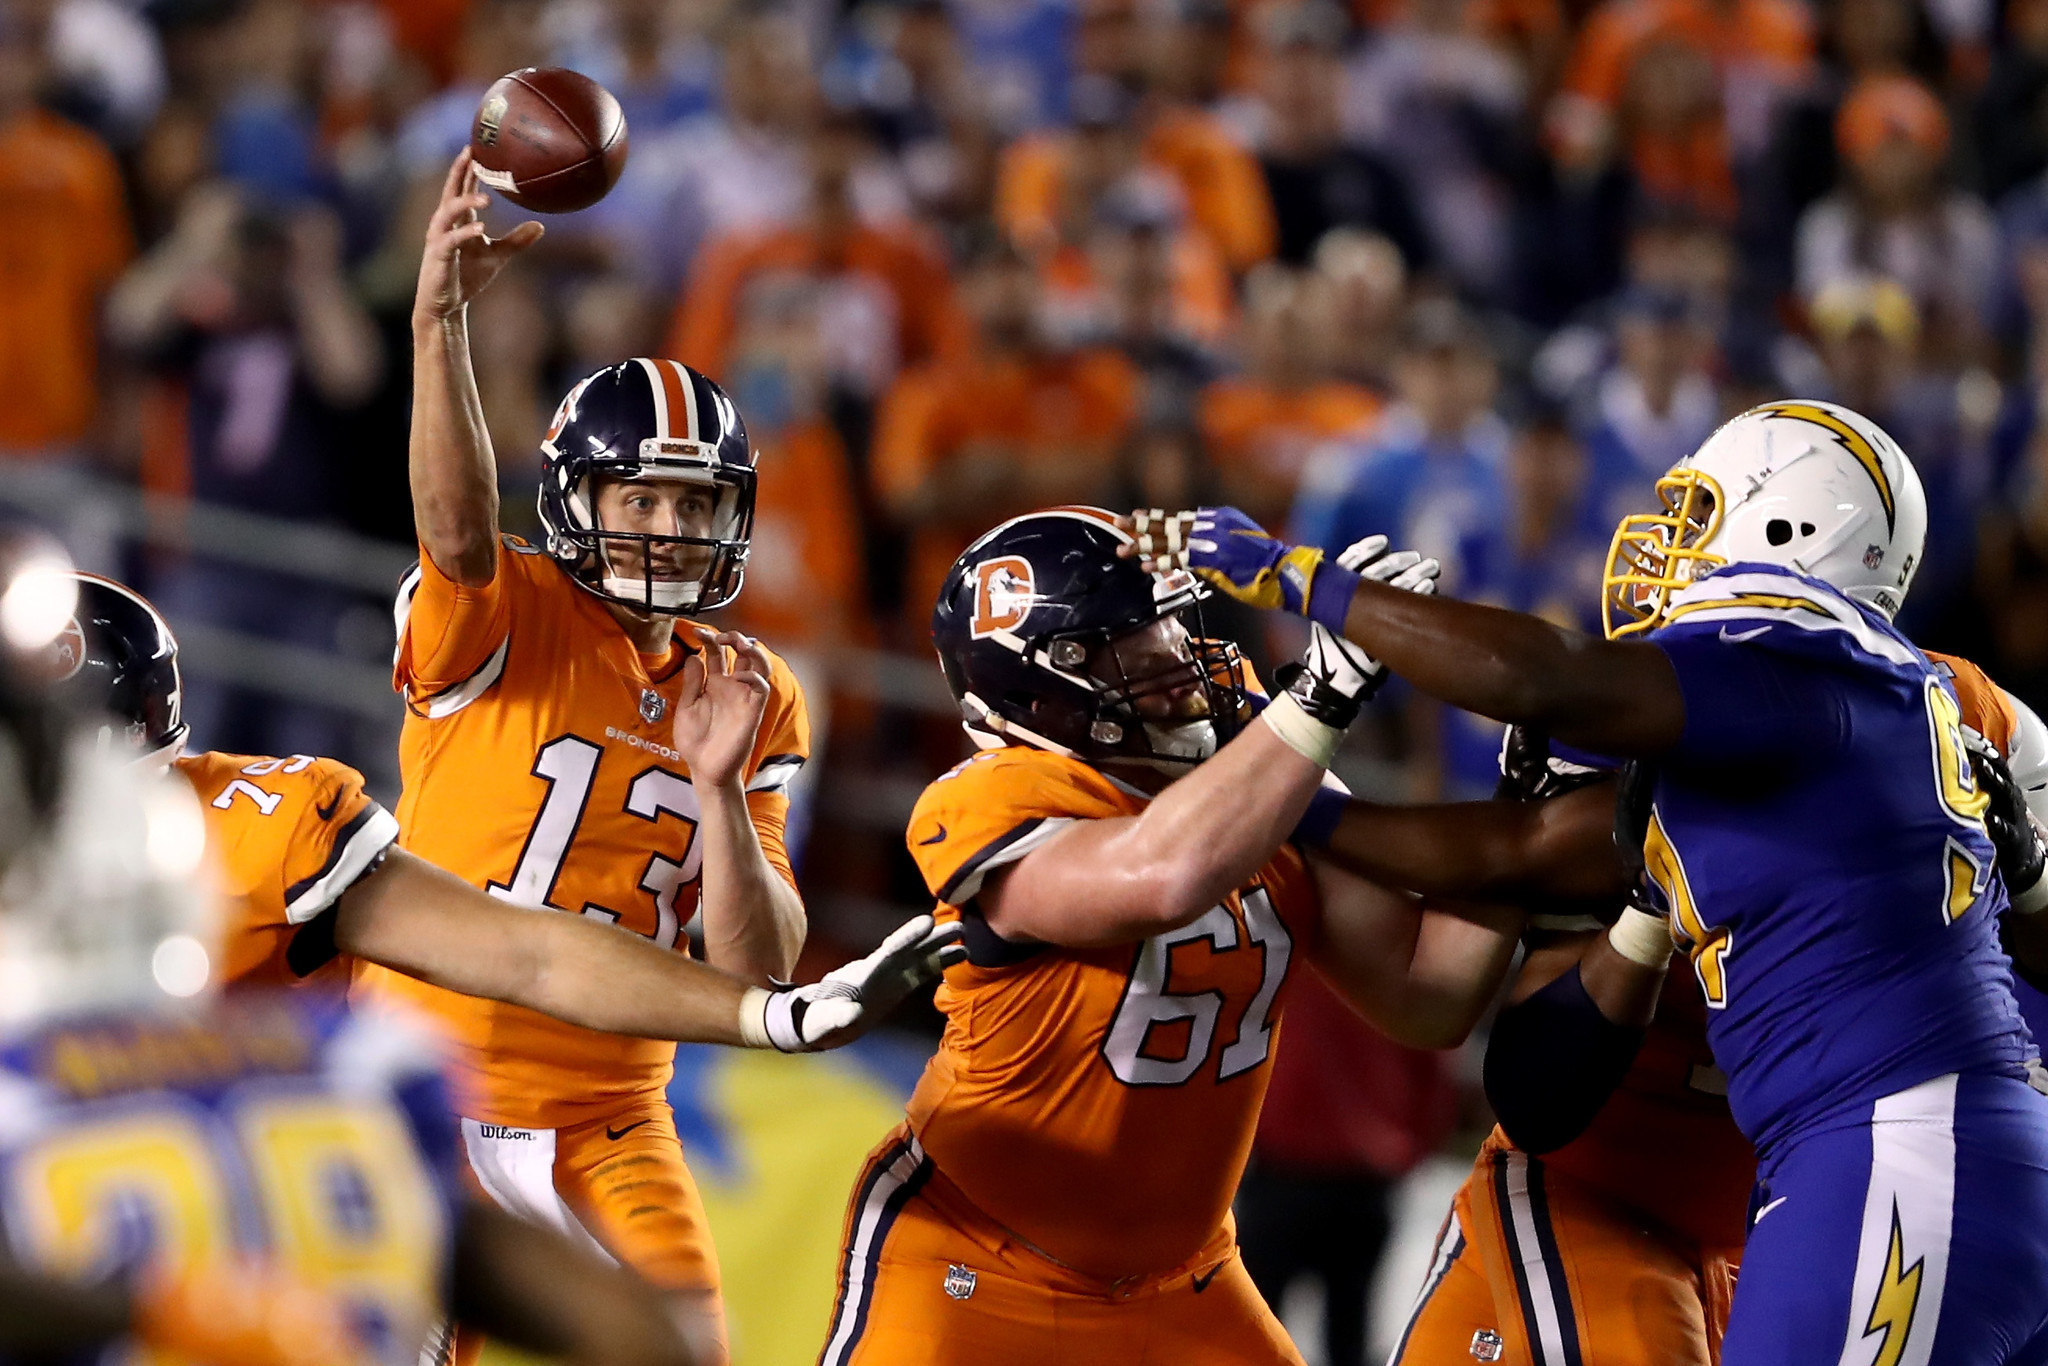 Sd-sp-kras-chargers-broncos-injuries-20161027